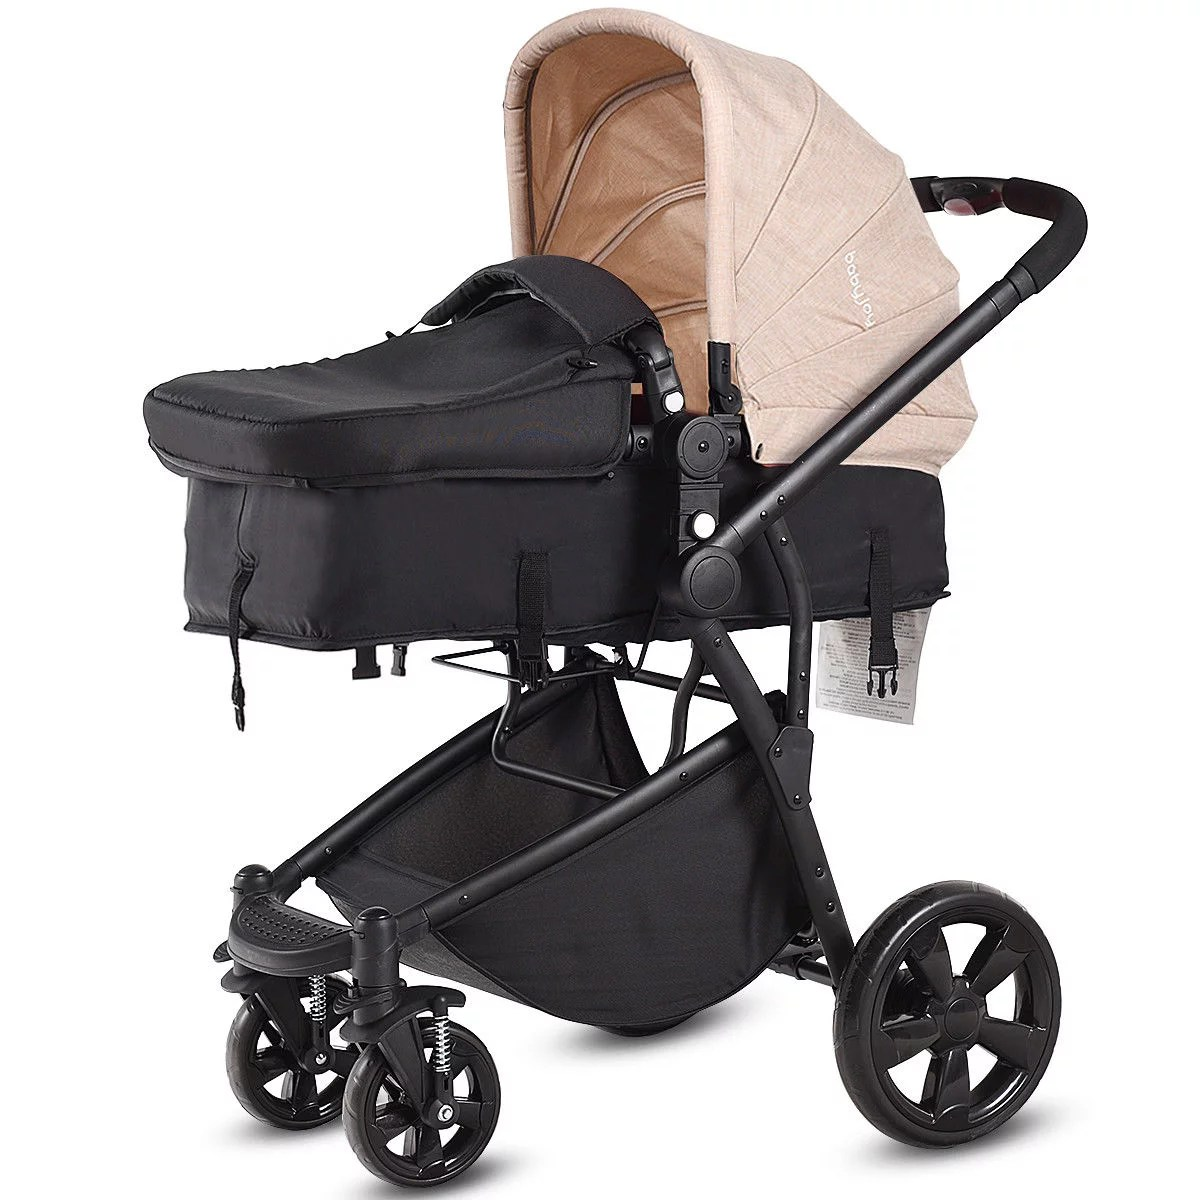 Newborn Baby Buggy Reviews Costway 2 In 1 Folding Aluminum Baby Stroller Buggy